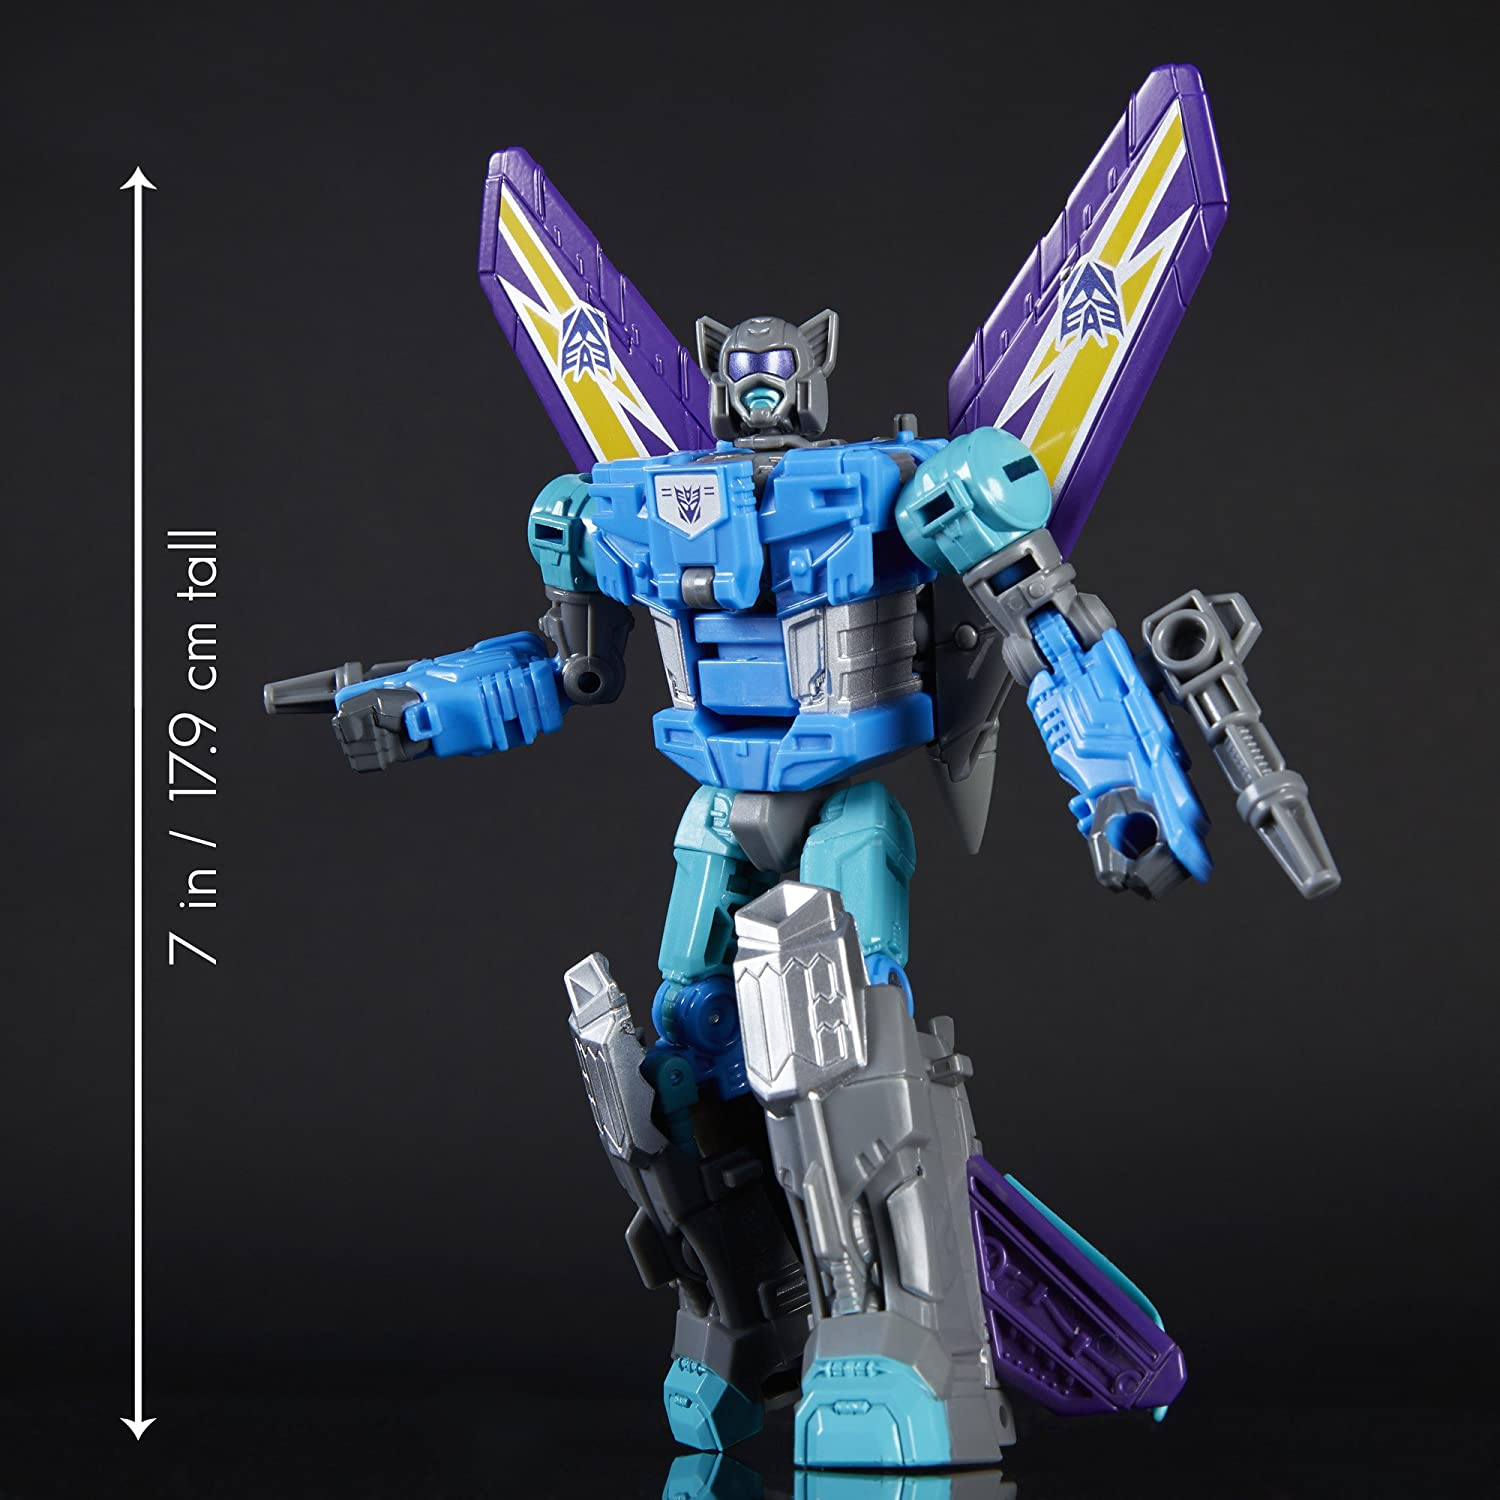 Transformers Generations Power of the Primes Deluxe Class Blackwing Hasbro E1128